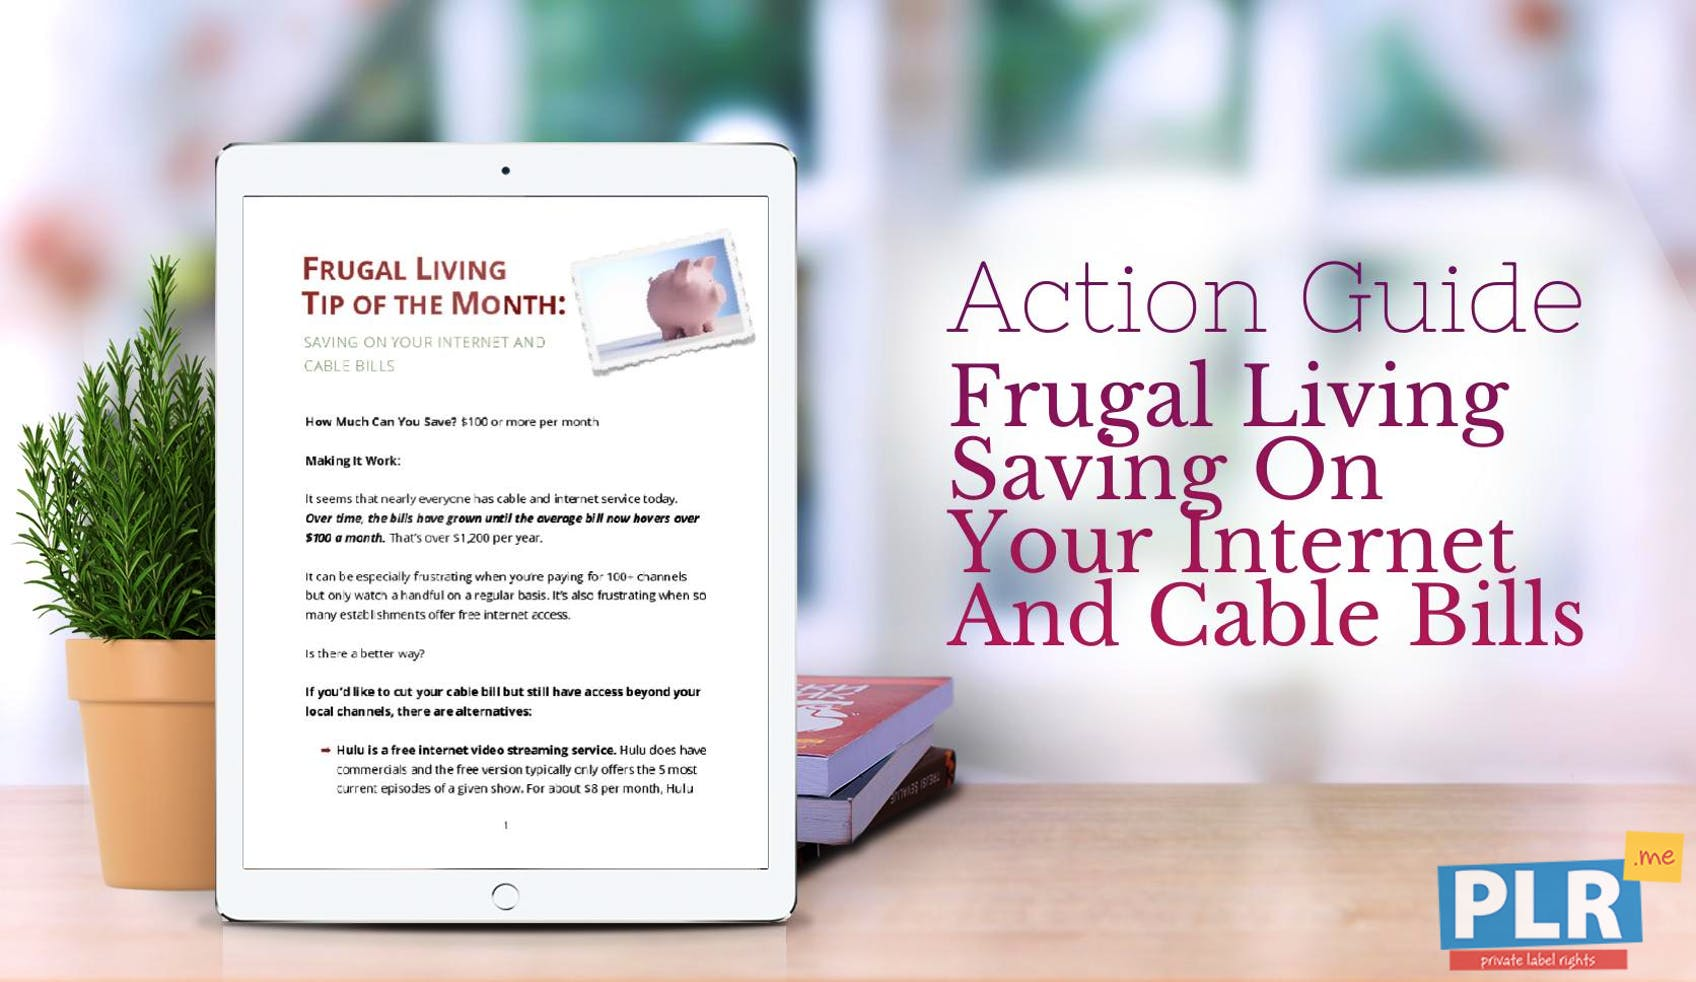 Frugal Living Saving On Your Internet And Cable Bills